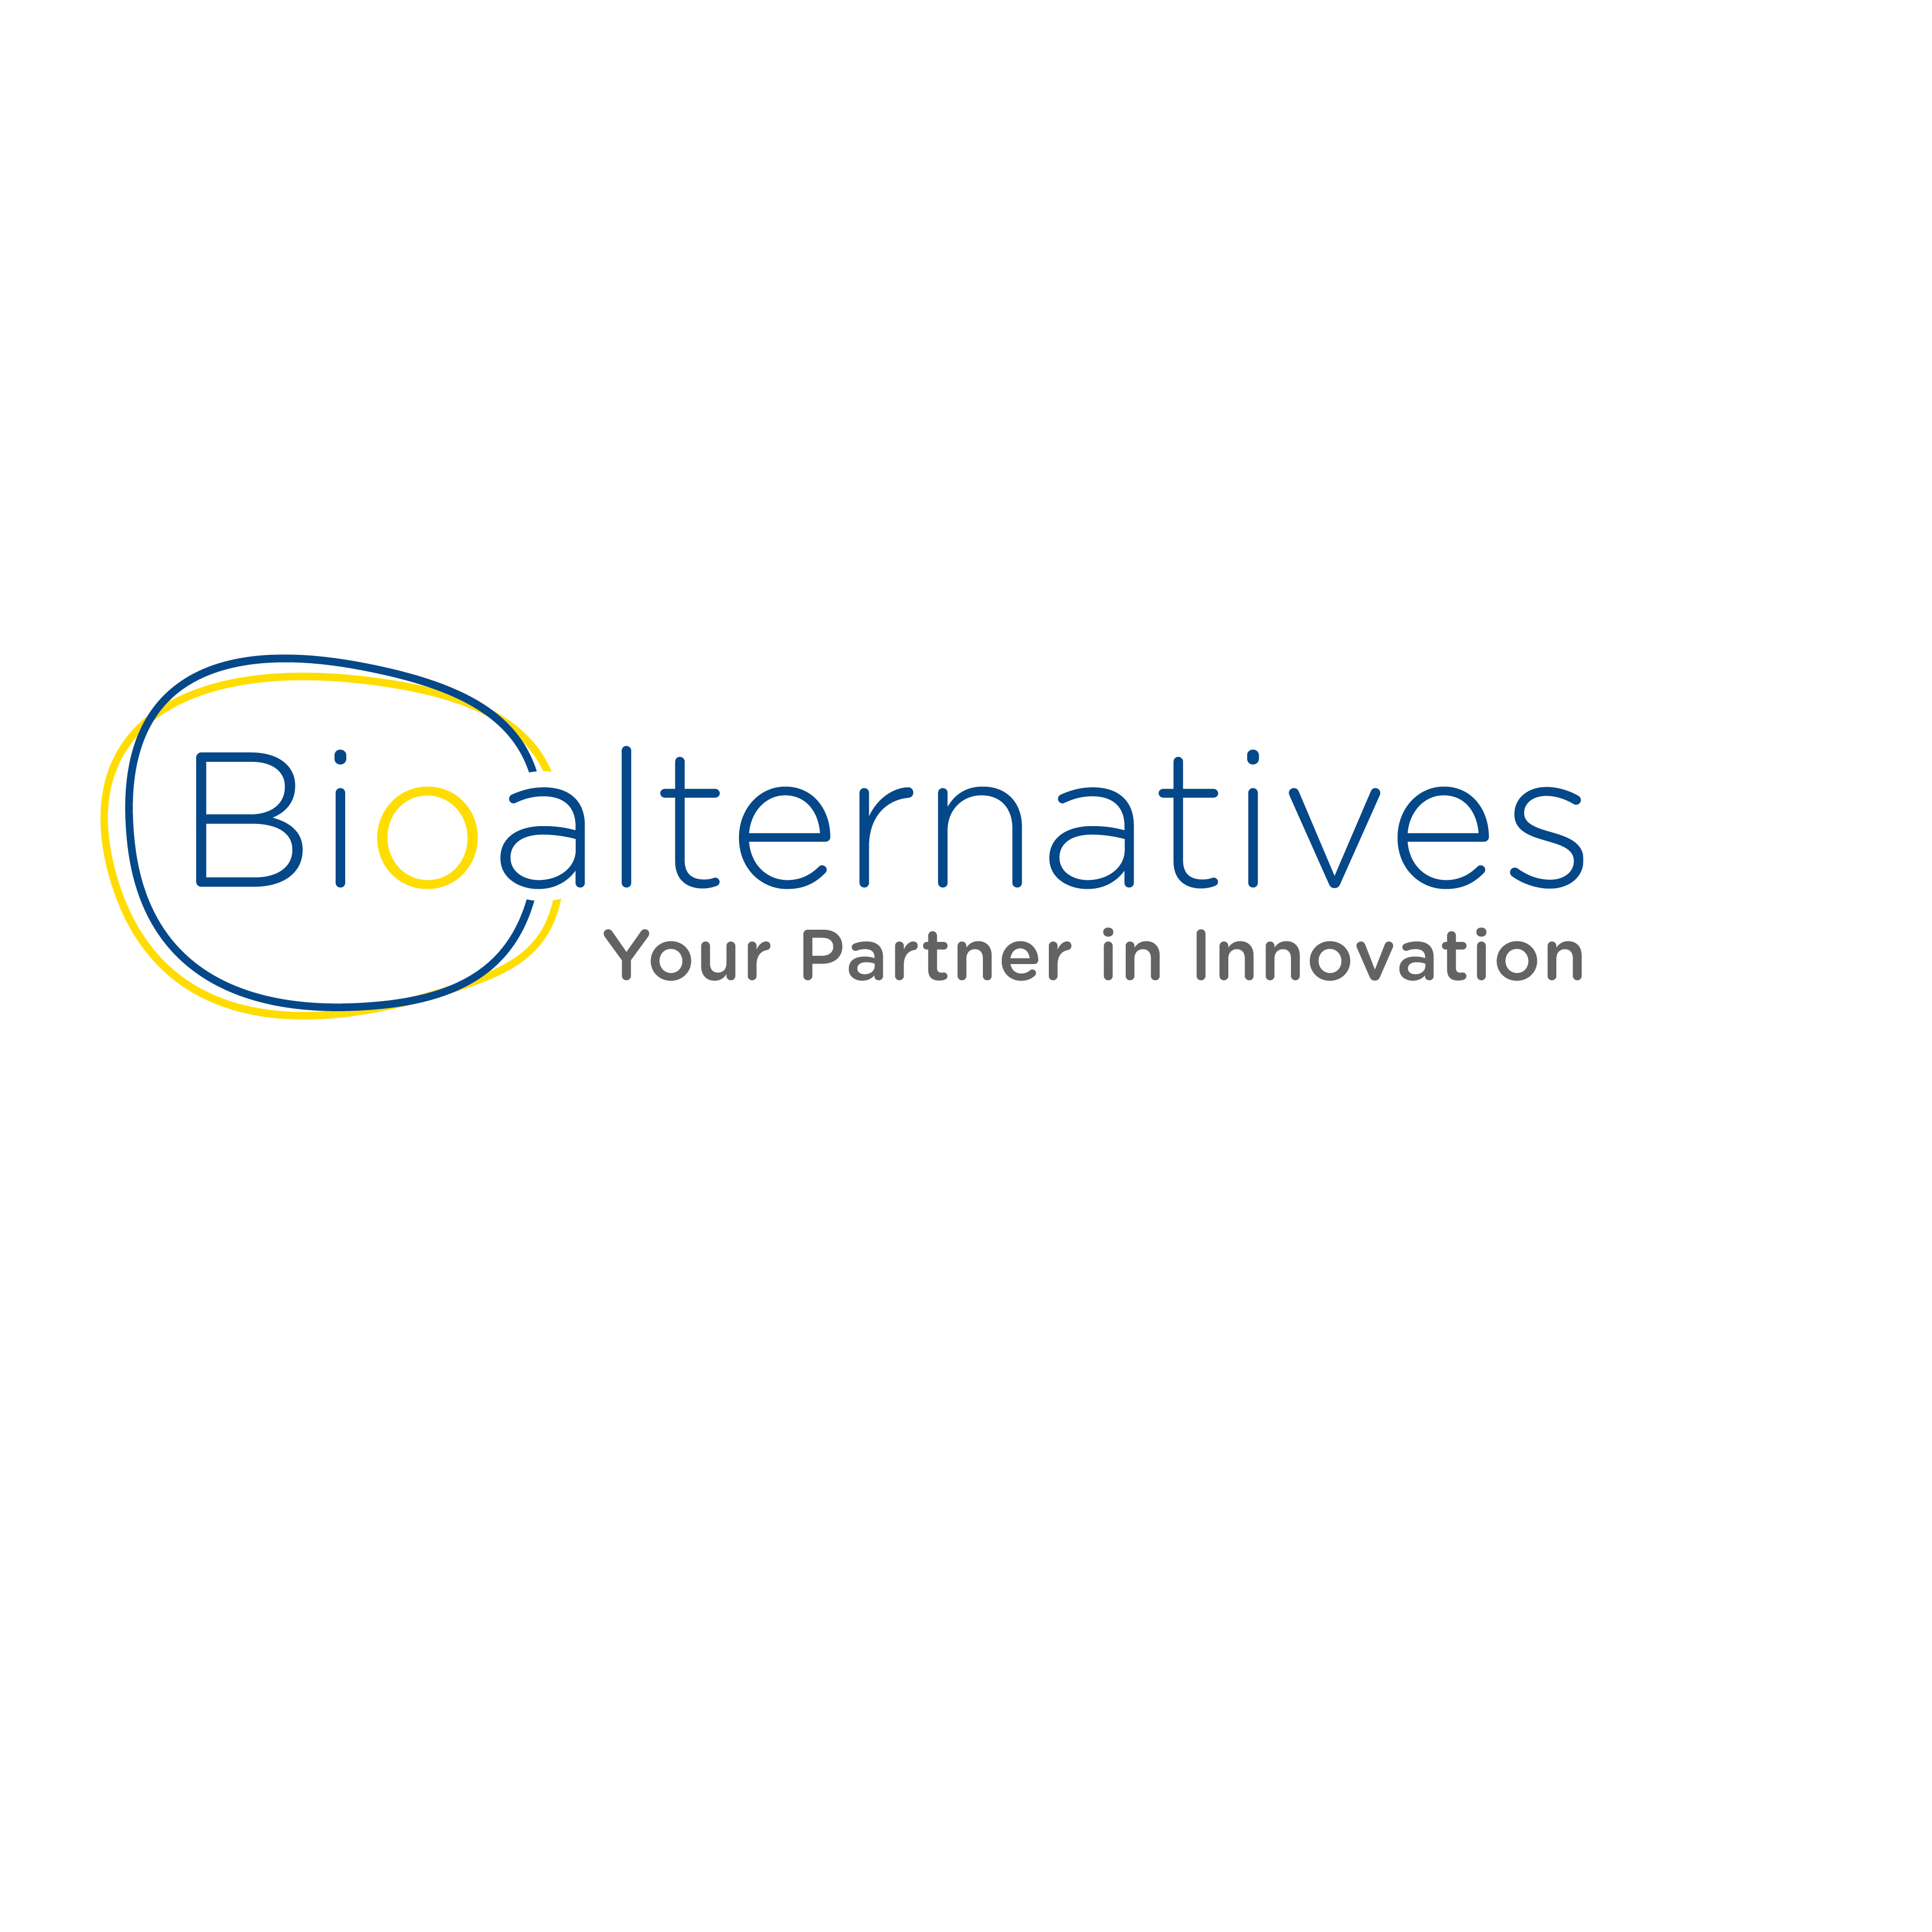 BIOALTERNATIVES